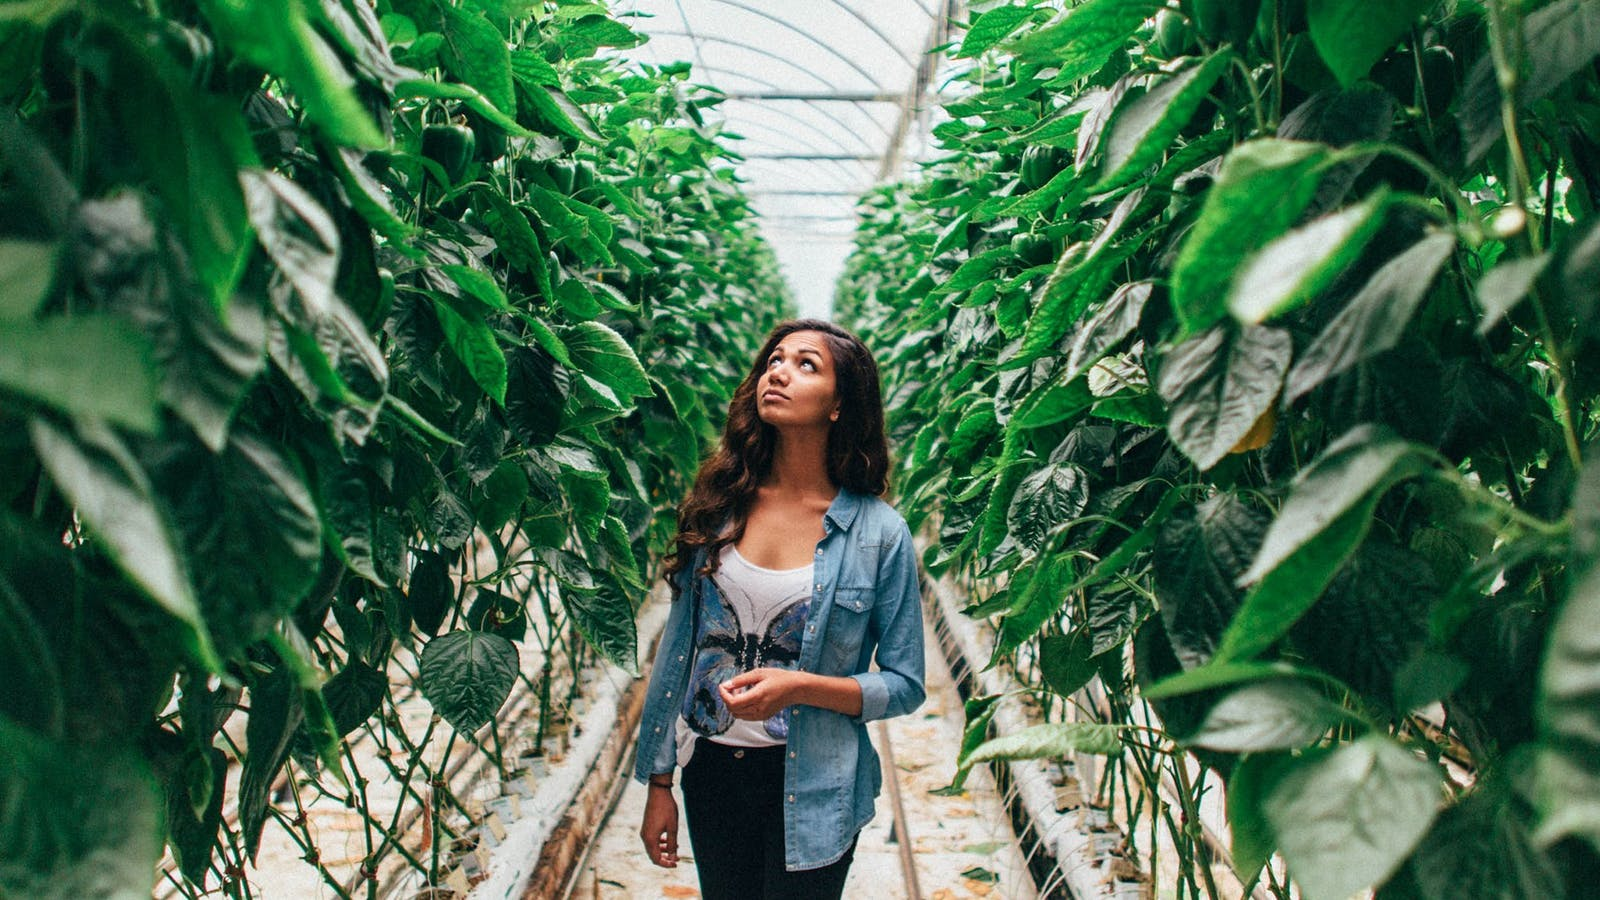 Gateway Estate operates a Hydroponic Greenhouse with Capsicums